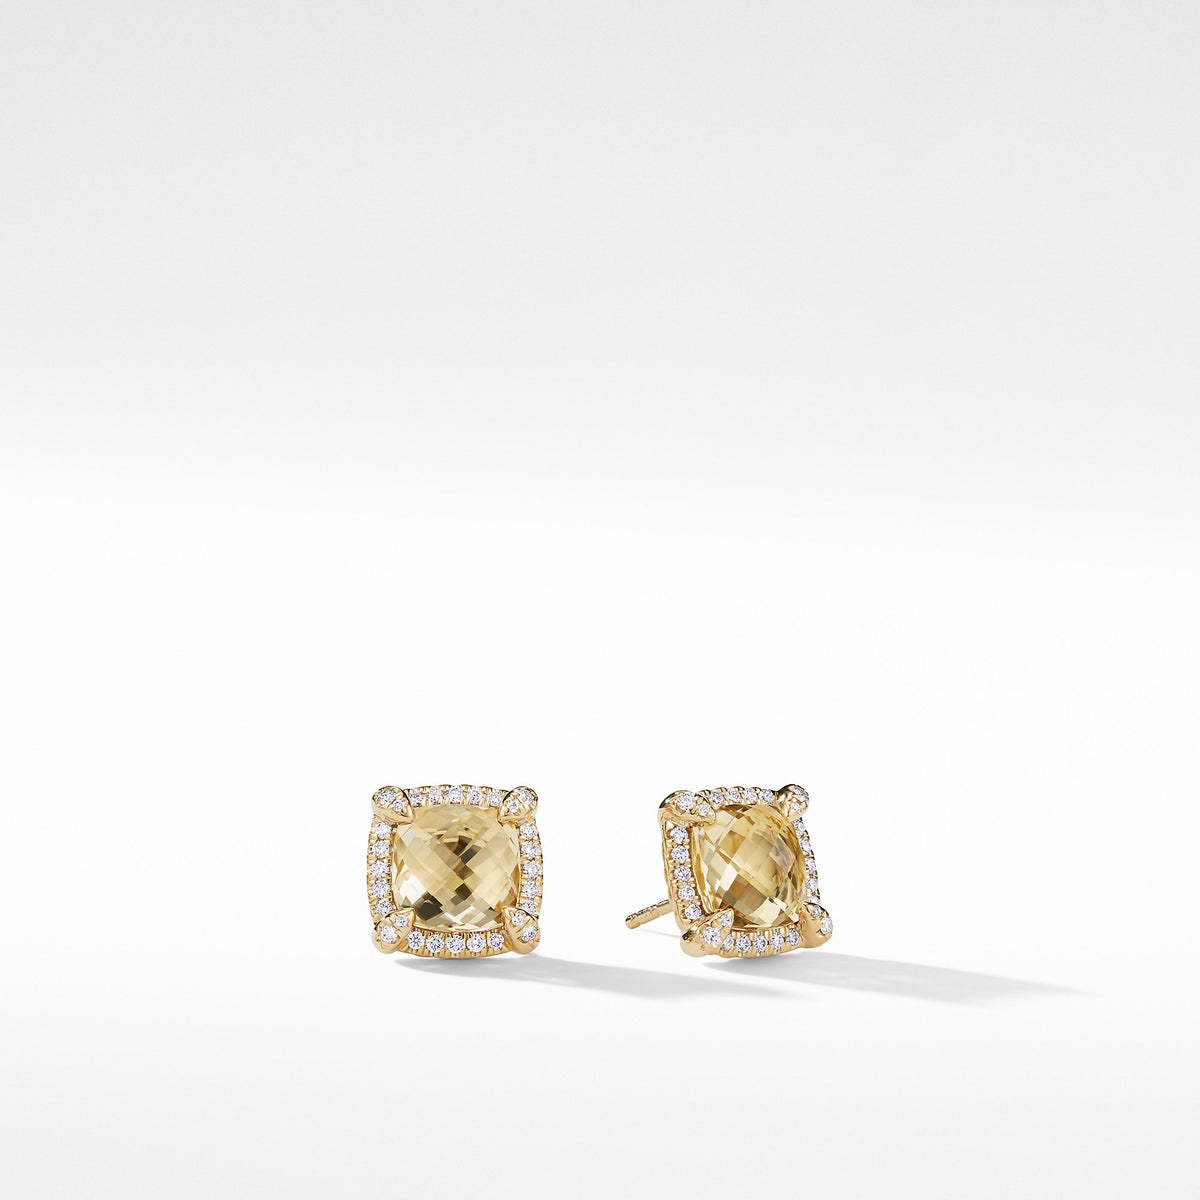 Chatelaine Pave Bezel Stud Earring with Champagne Citrine and Diamonds in 18K Gold,